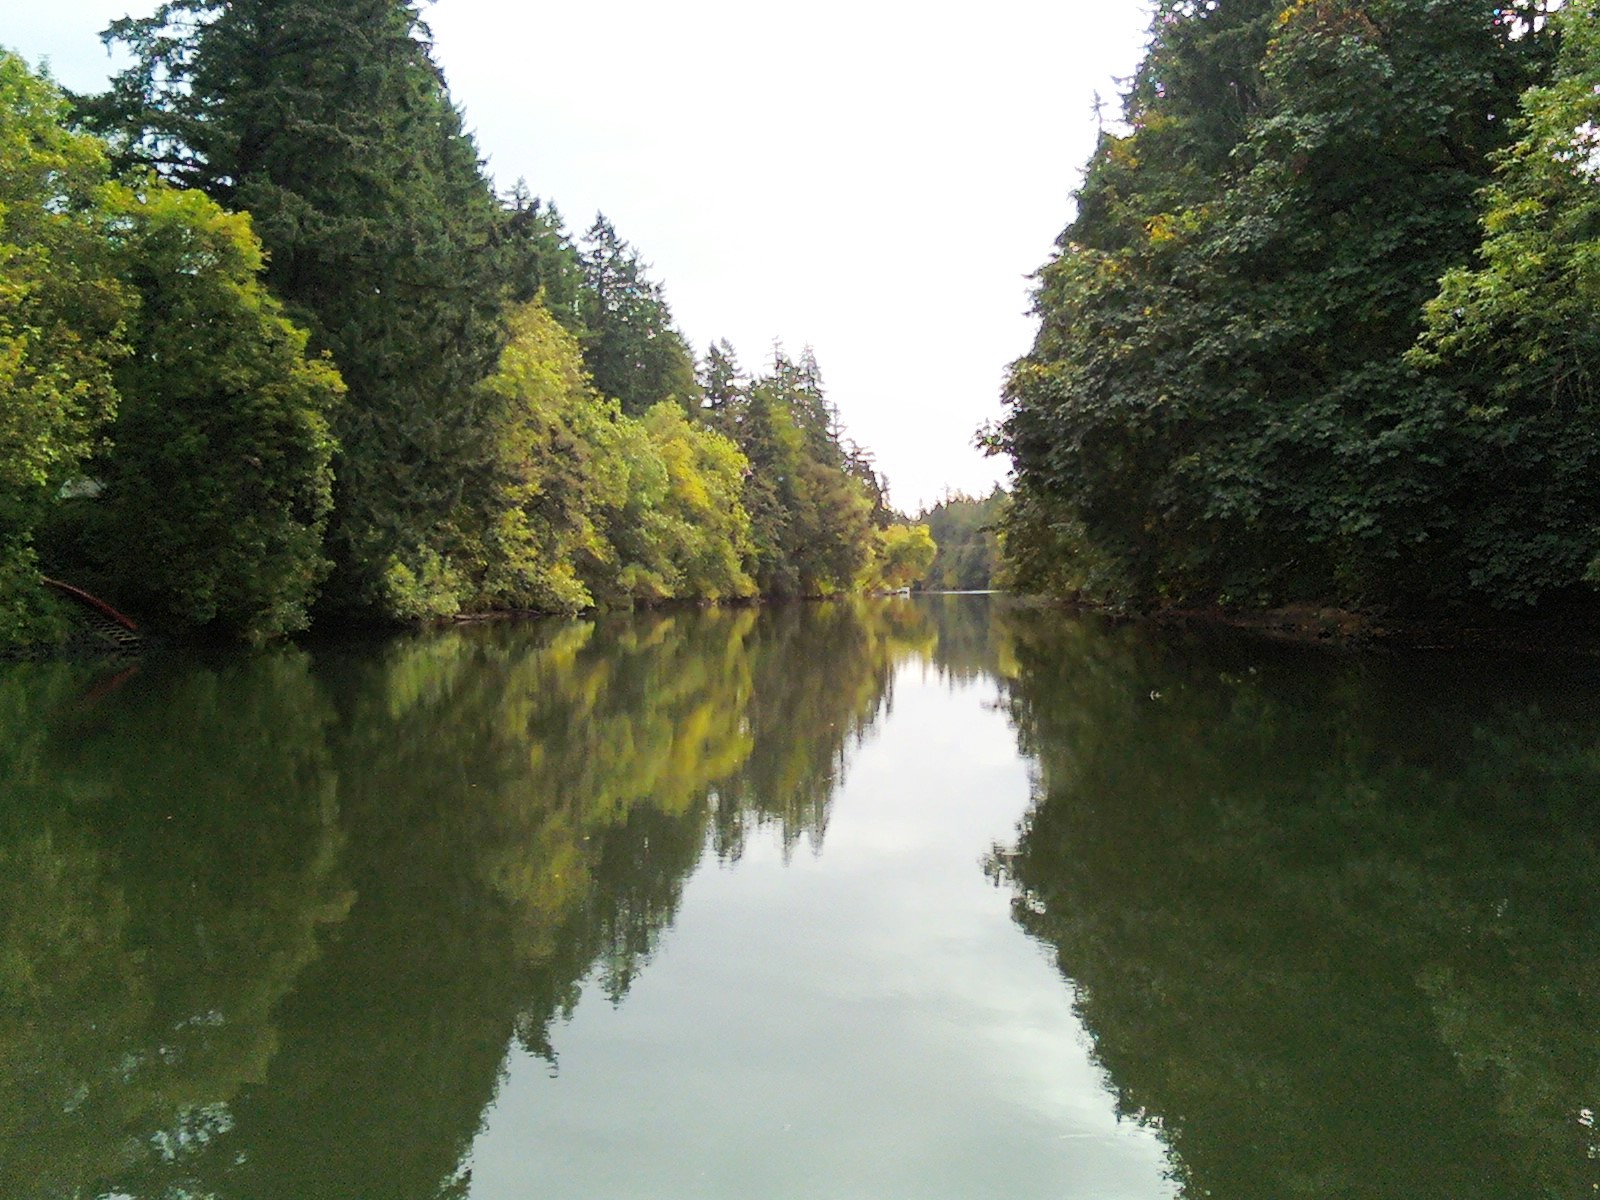 Tualatin_River_at_Browns_Ferry_Park_Tualatin